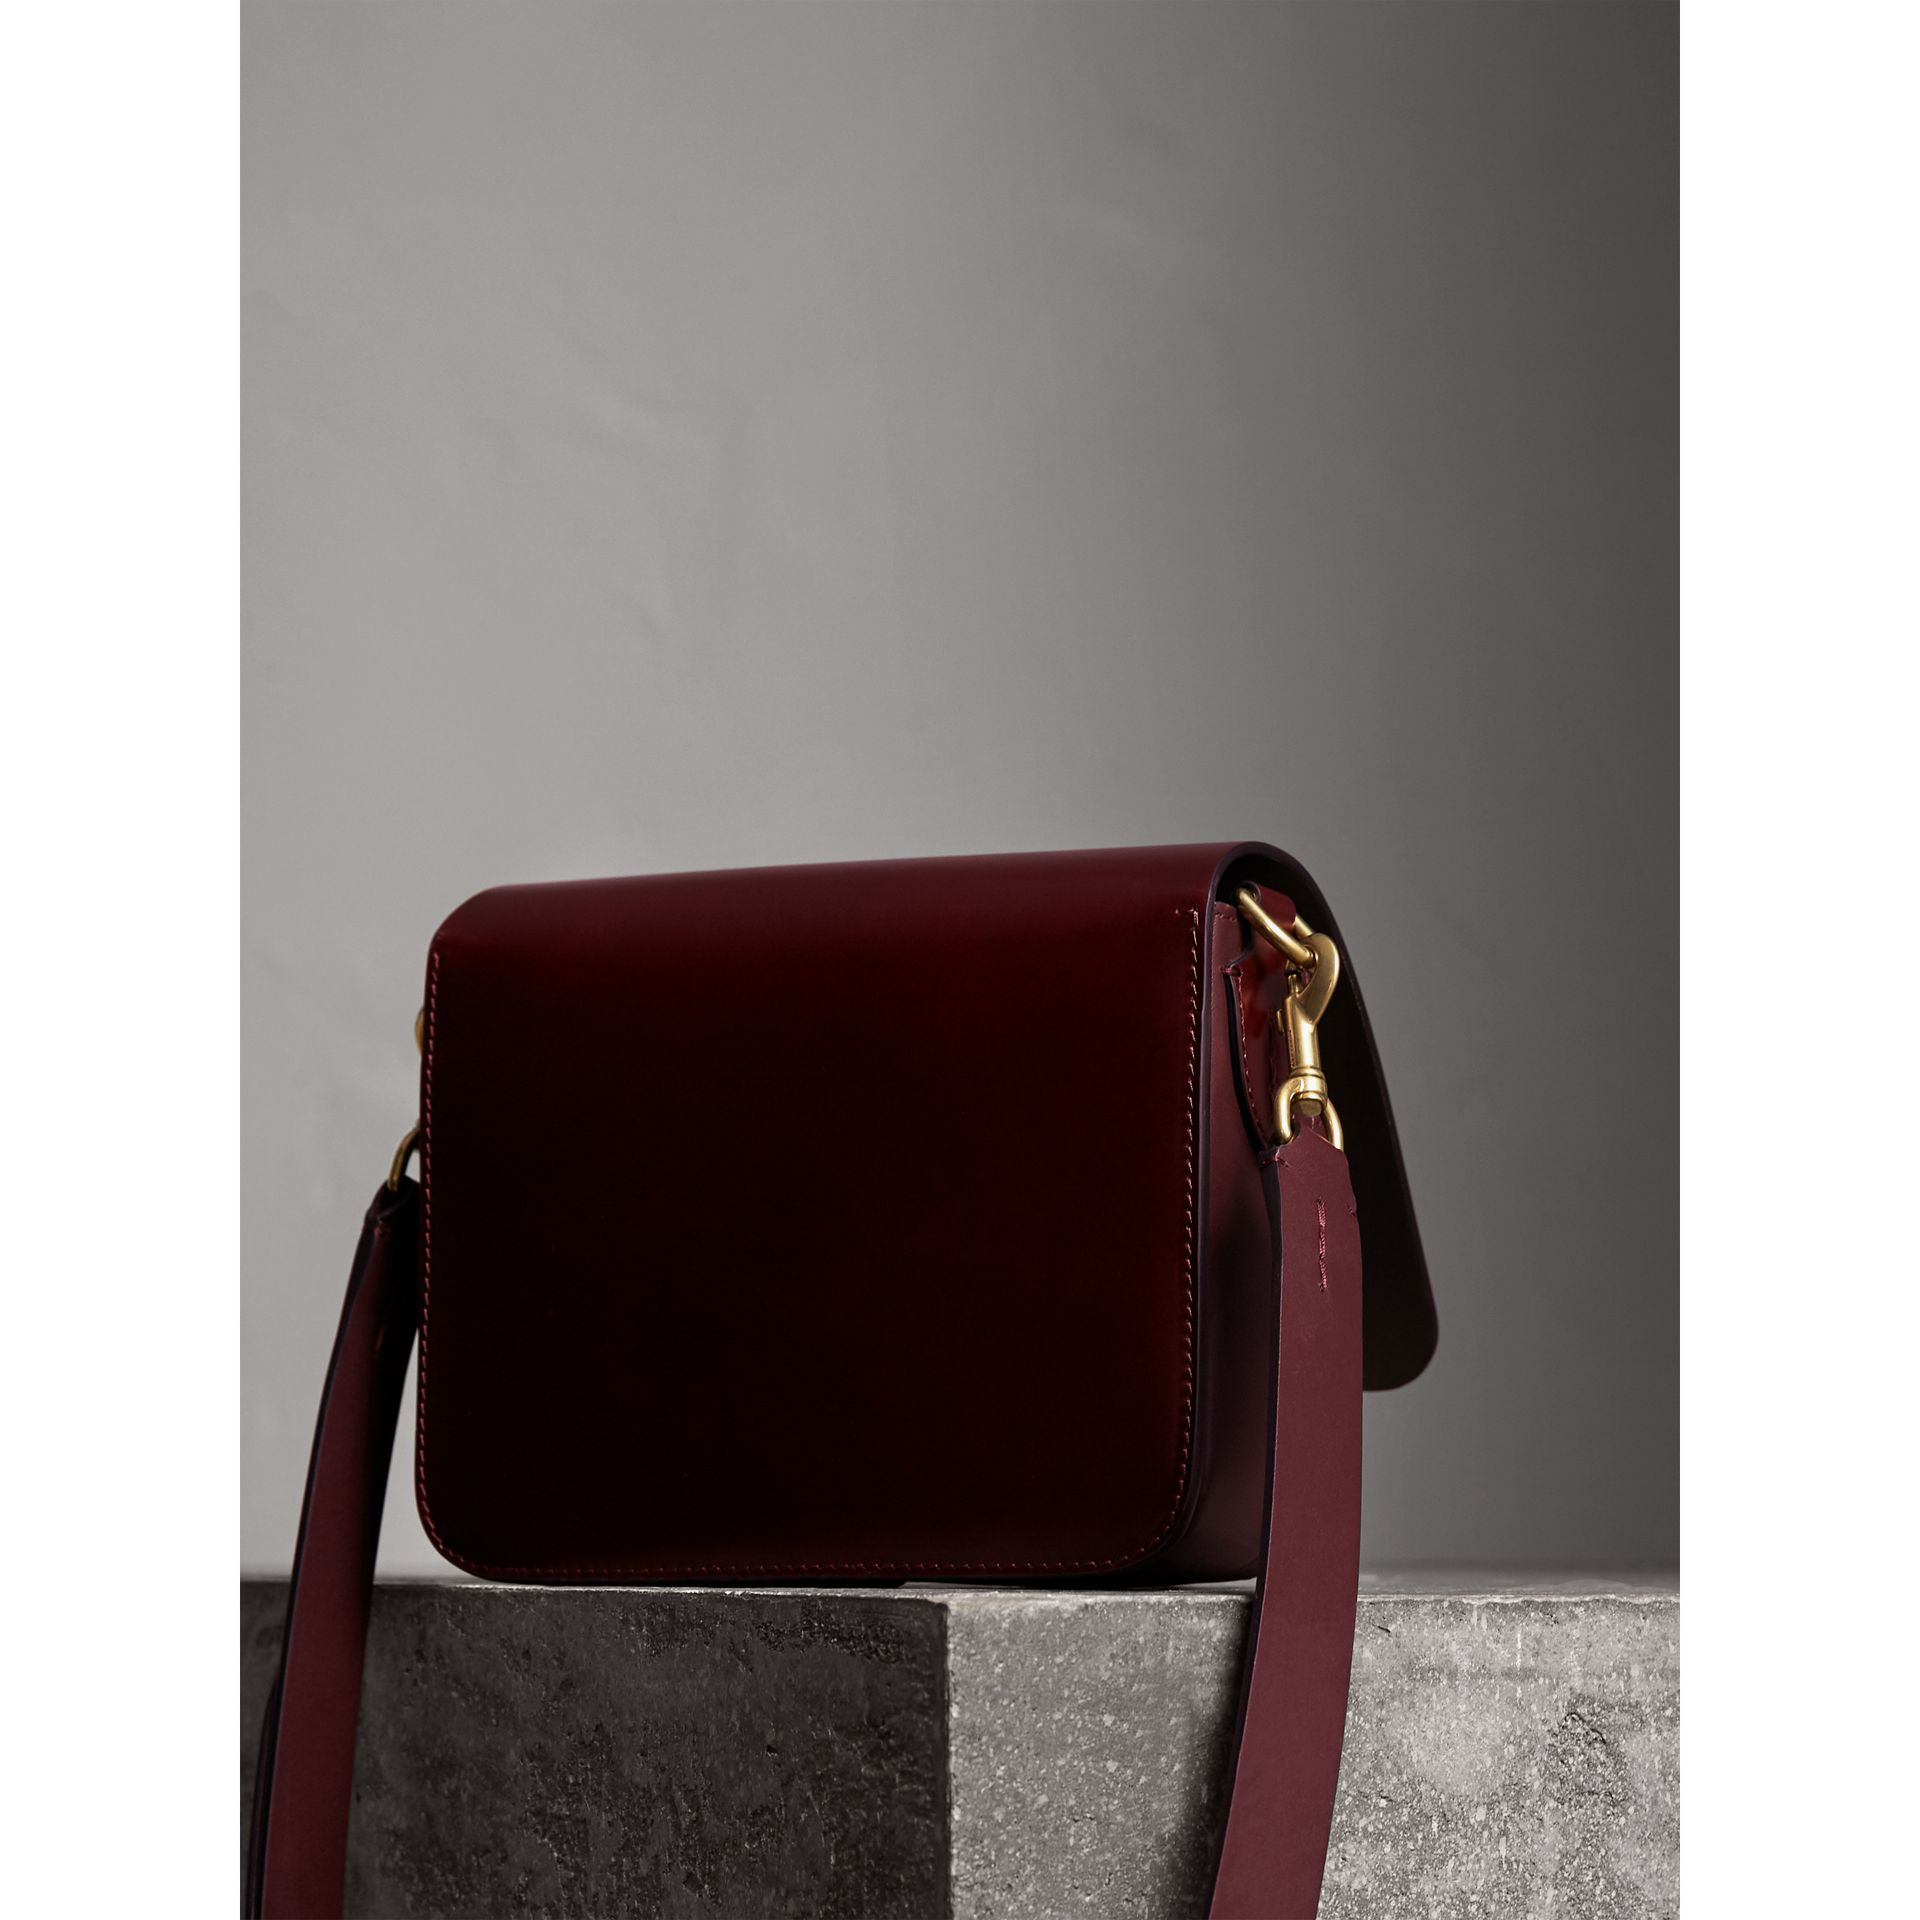 The Square Satchel in Bridle Leather in Deep Claret - Women | Burberry United Kingdom - gallery image 3